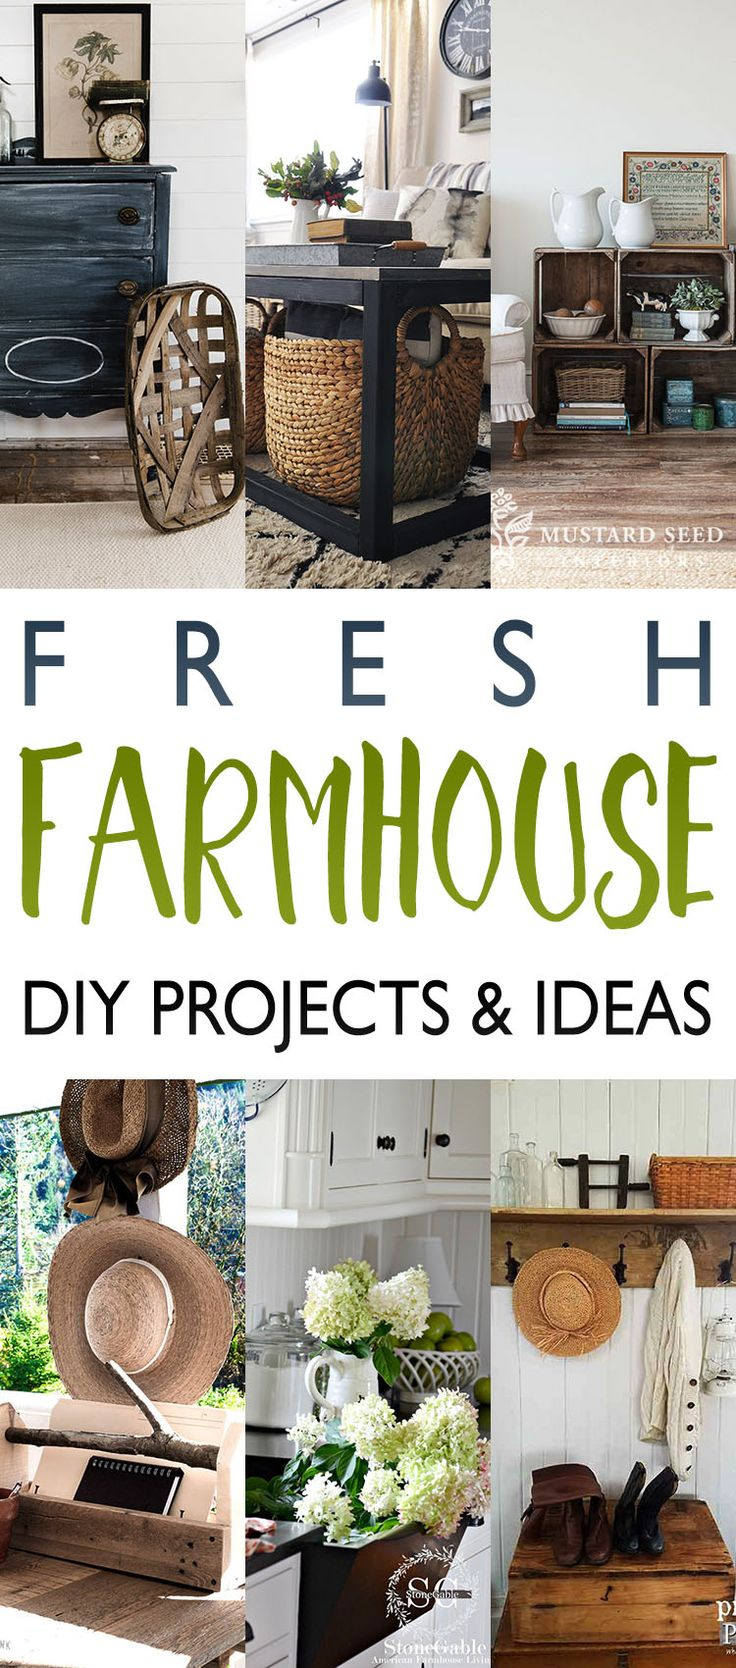 With all of the Holiday Posts I thought we would take a little break today and shine the spot light on some Fresh Farmhouse DIY Projects and Ideas.  I think you are really going to enjoy these.  From an incredible Farmhouse Fresh Coat Rack to a collection of Old Crates that come together to form …